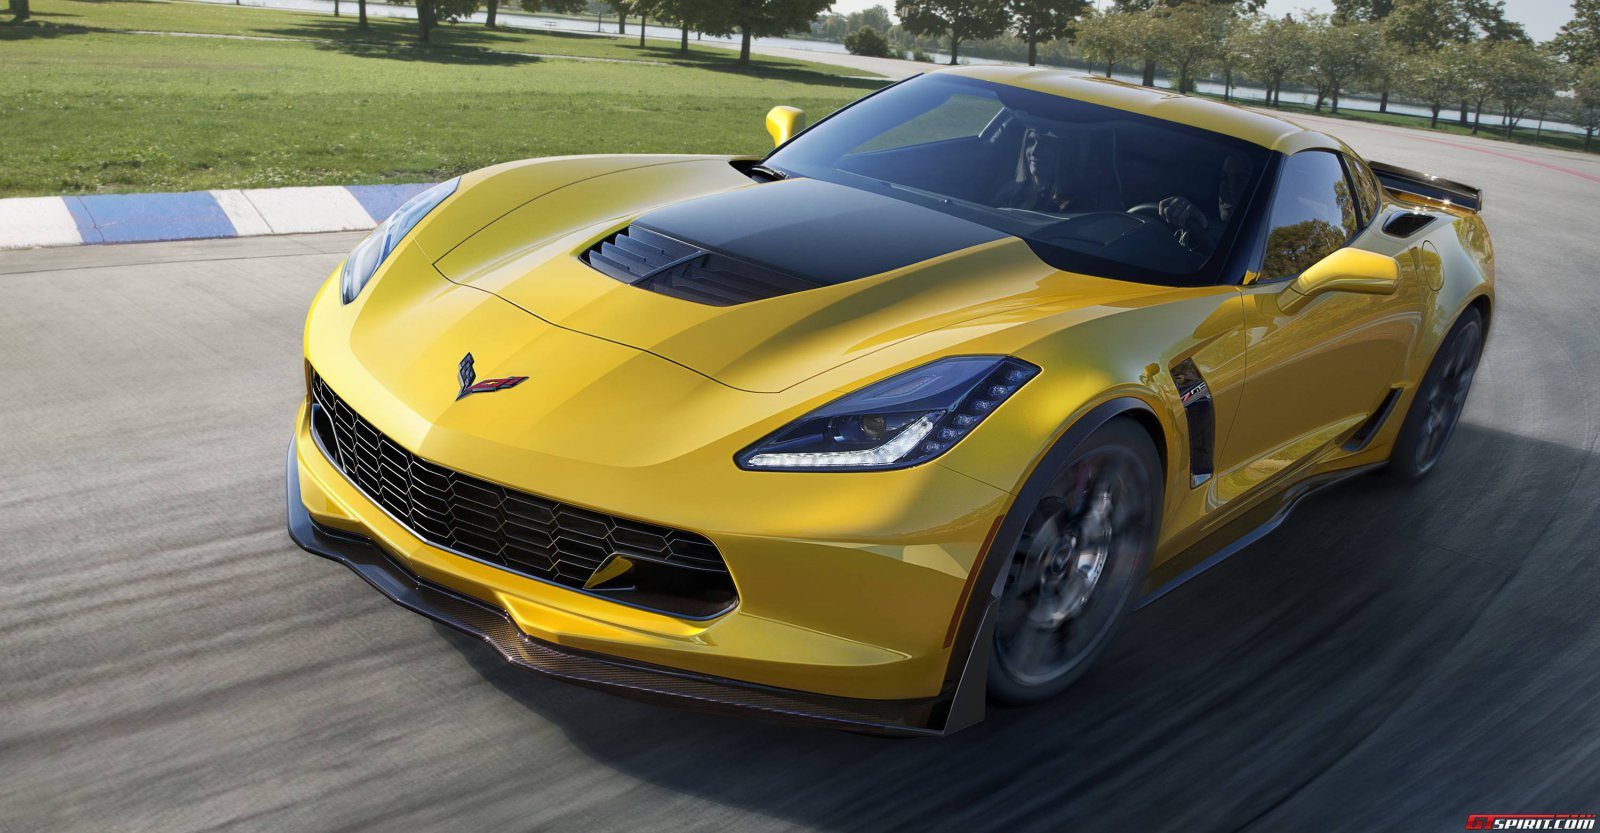 eight speed c7 corvette stingray may not arrive in 2015 afterall. Cars Review. Best American Auto & Cars Review